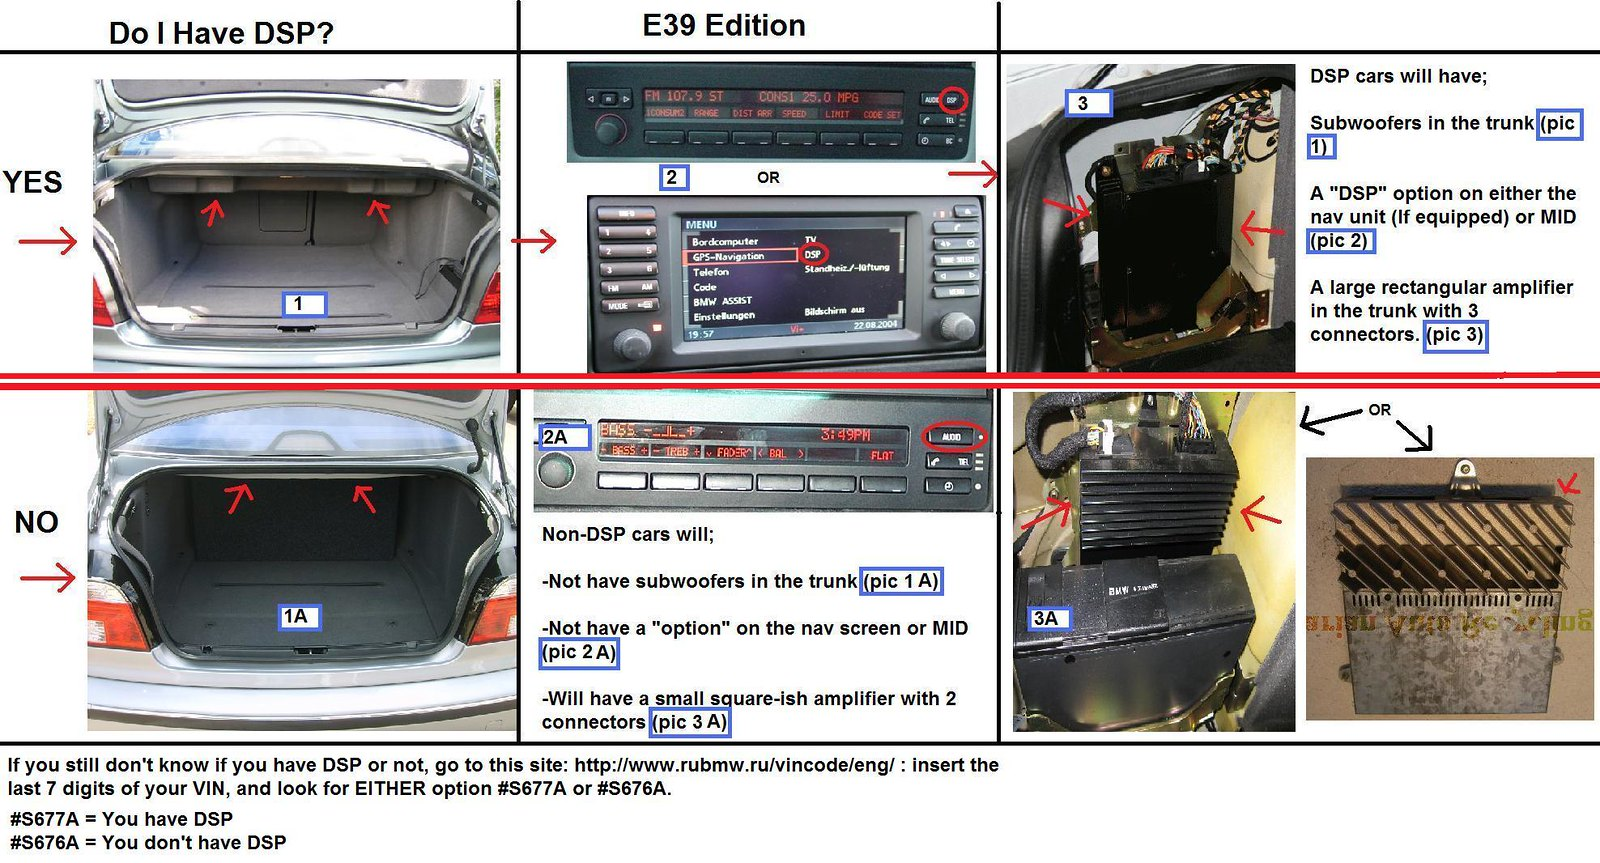 Dsp E39 Wiring All Kind Of Diagrams Land Rover Heated Windshield How Do I Know If Have 2002 Bmw Radio Subaru Seat Heater